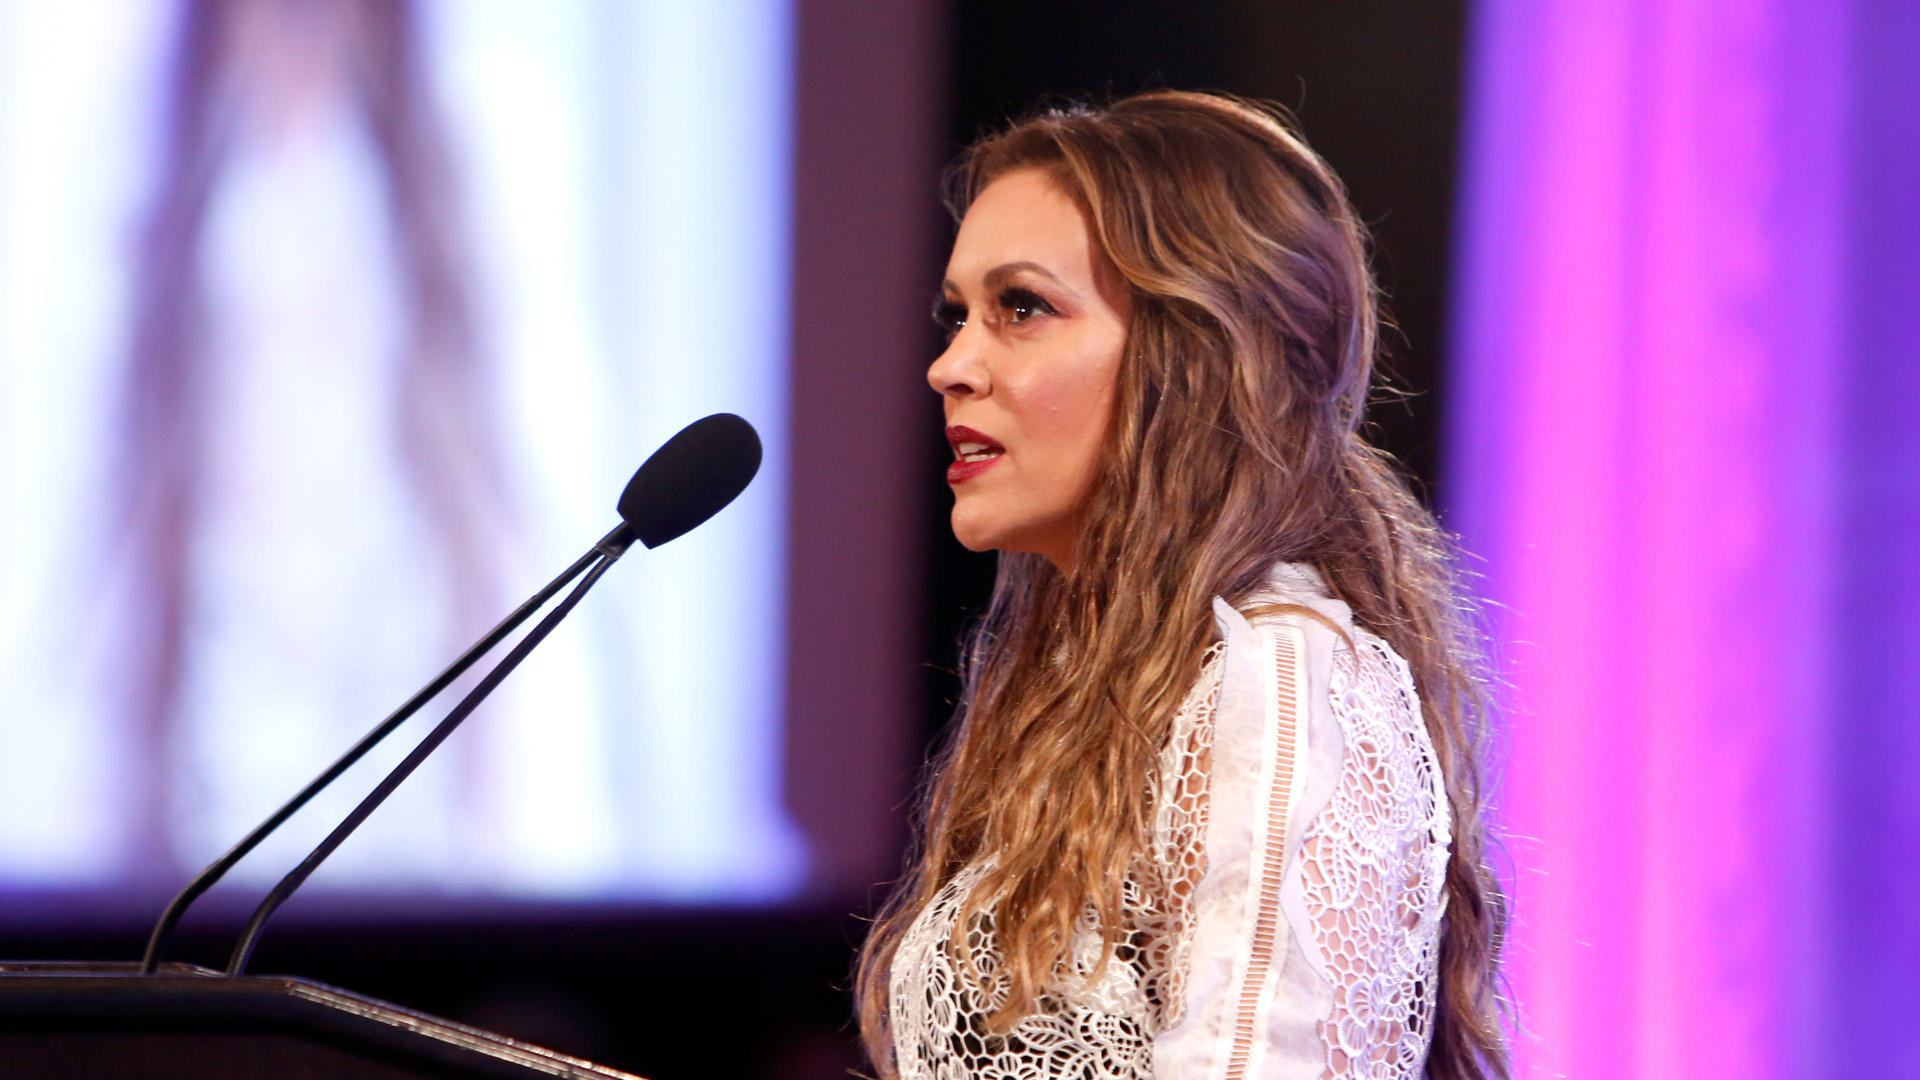 Actress Alyssa Milano speaks at the 2017 World Of Children Hero Awards at Montage Beverly Hills on April 19, 2017, in Beverly Hills. (Credit: Randy Shropshire/Getty Images for World of Children)